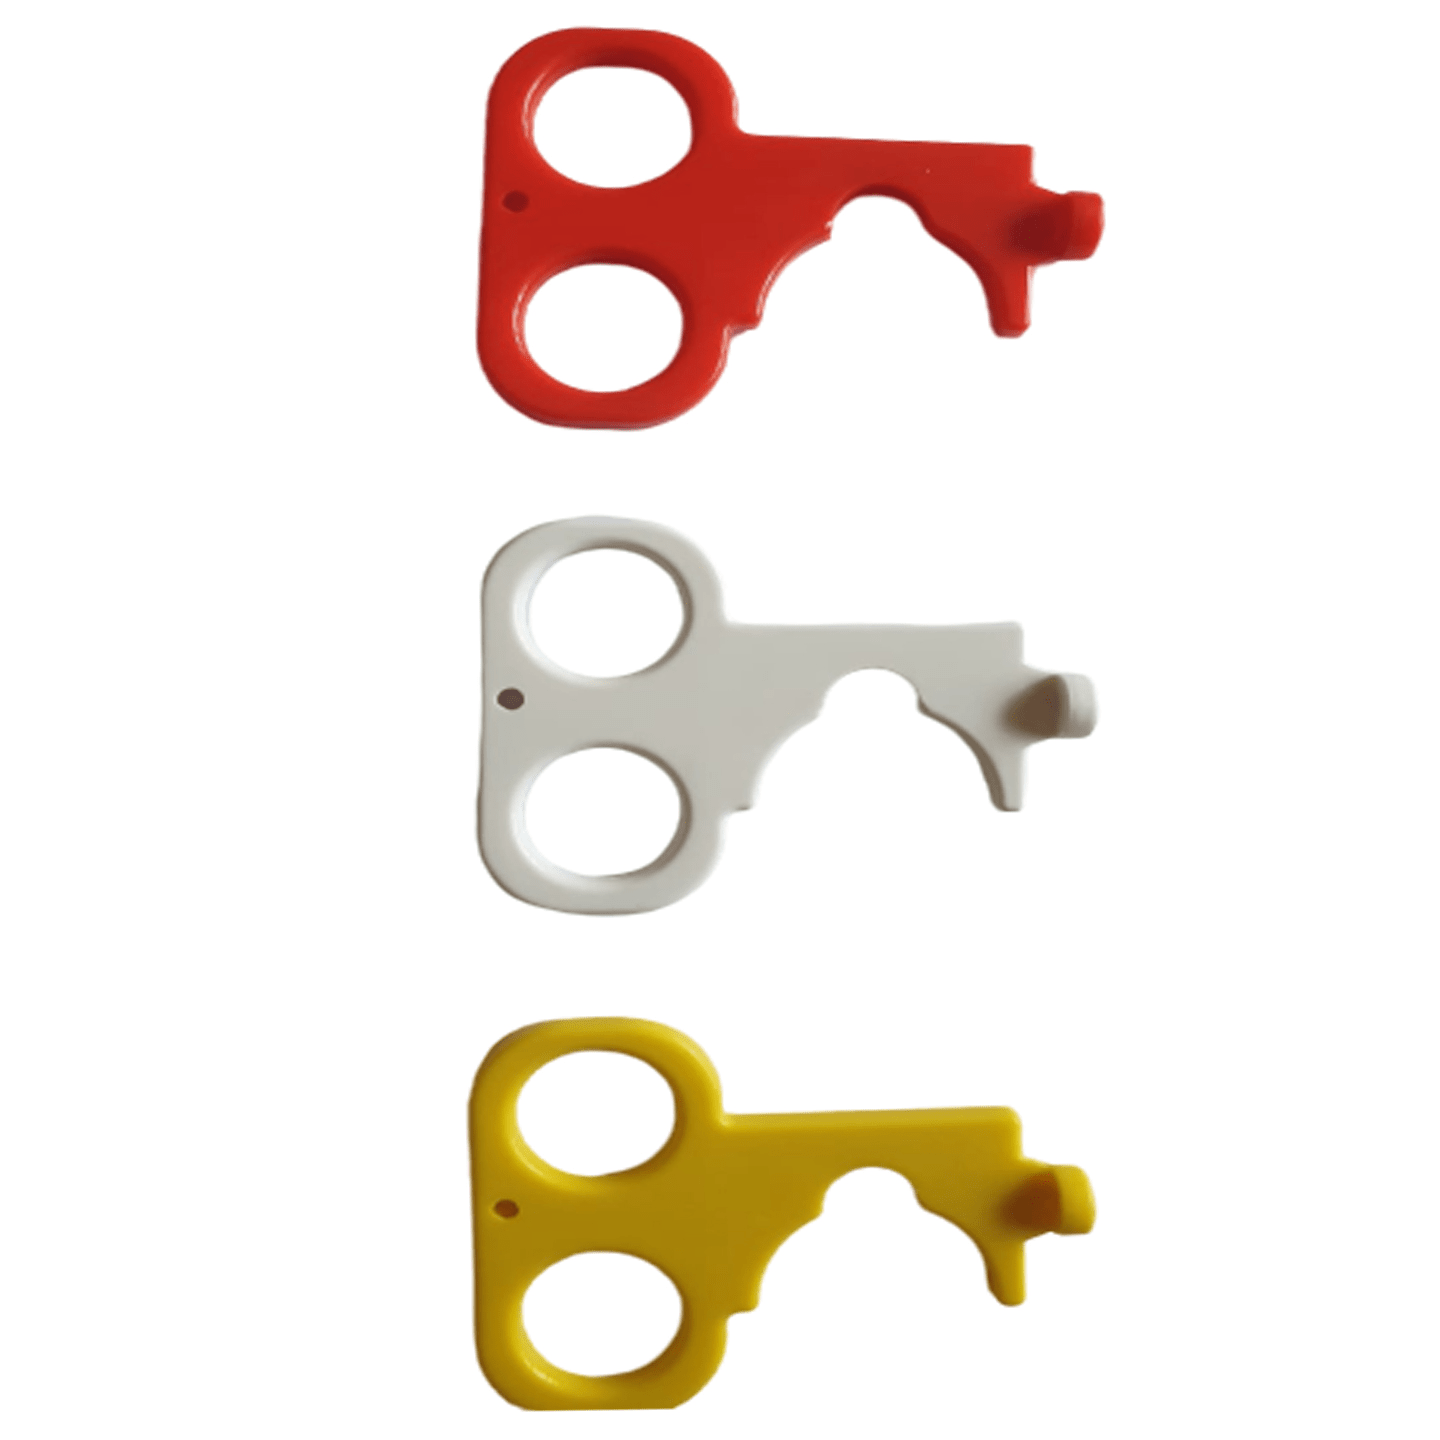 Safety Key (Pack of 20) | Covid Prevention Product CP-07